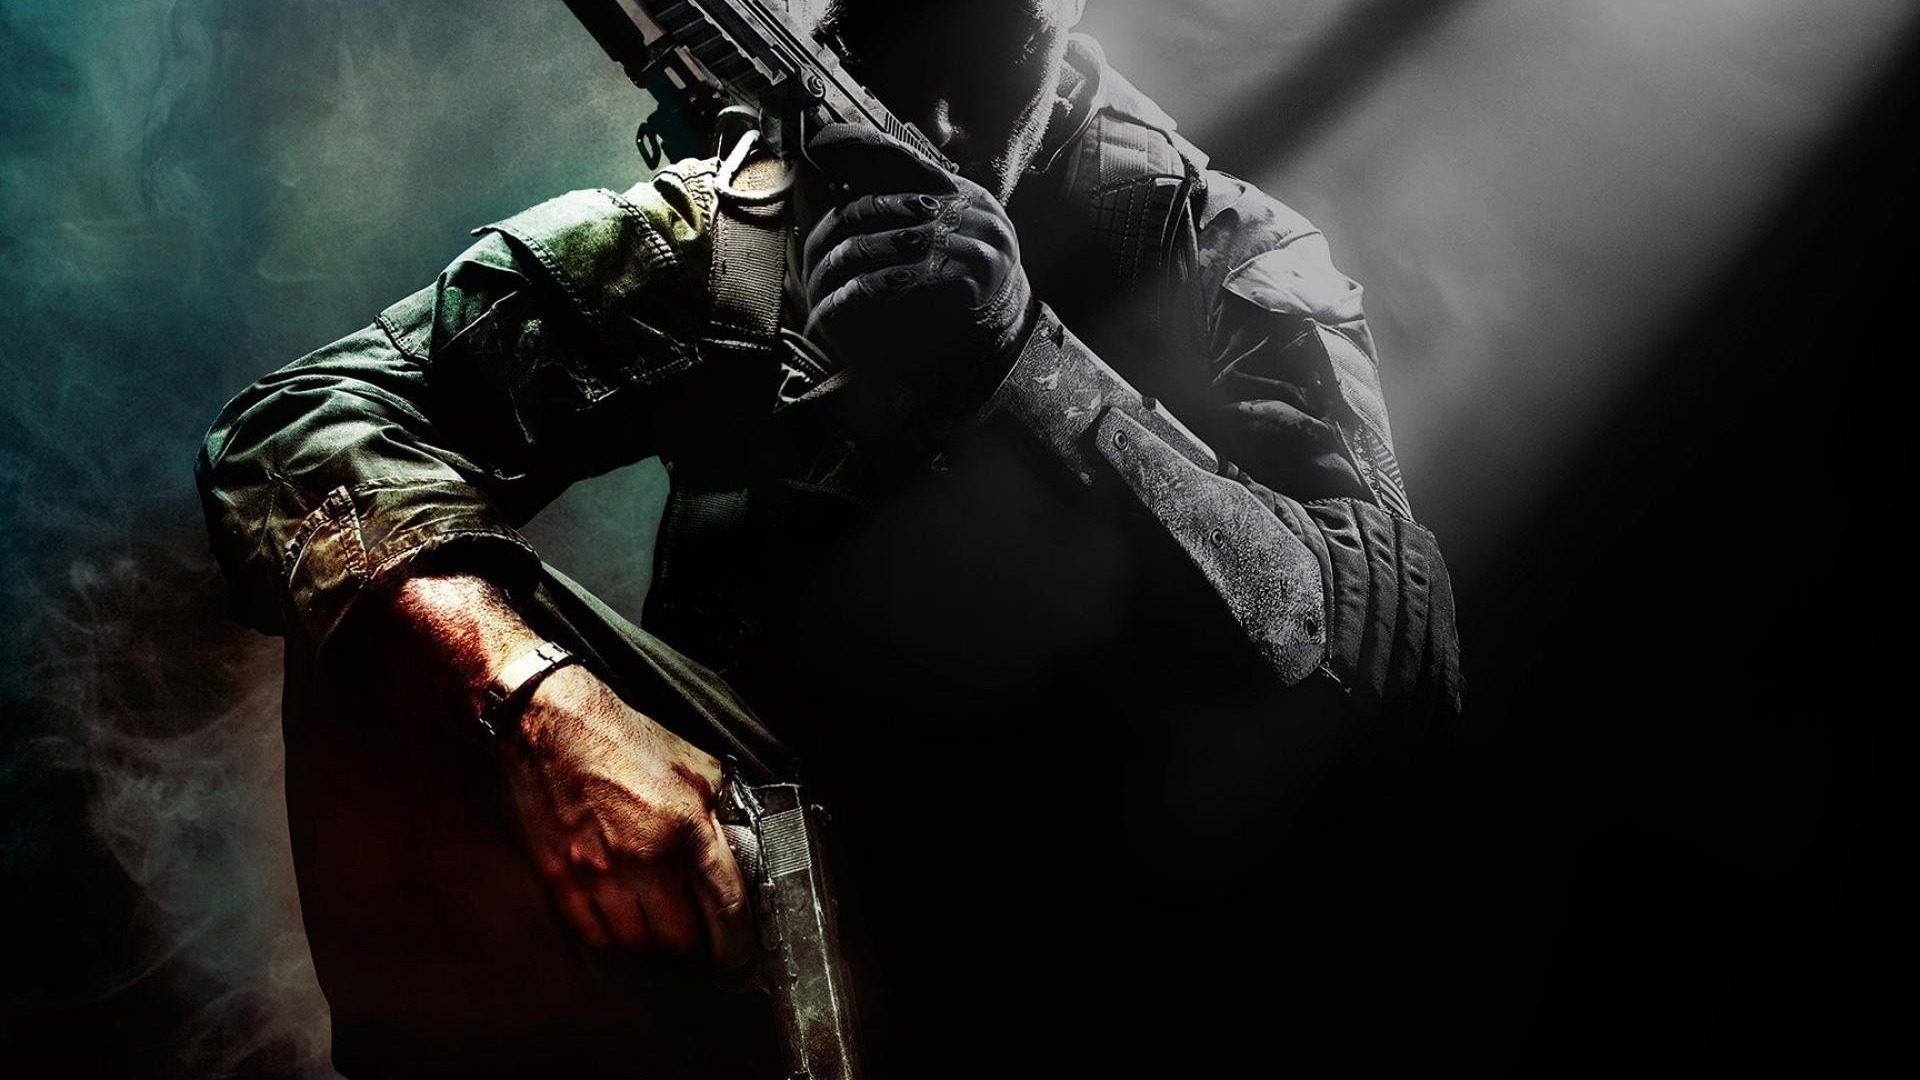 Pubg Wallpaper Black: Treyarch's Call Of Duty 2015 Teases Continue In Black Ops 2